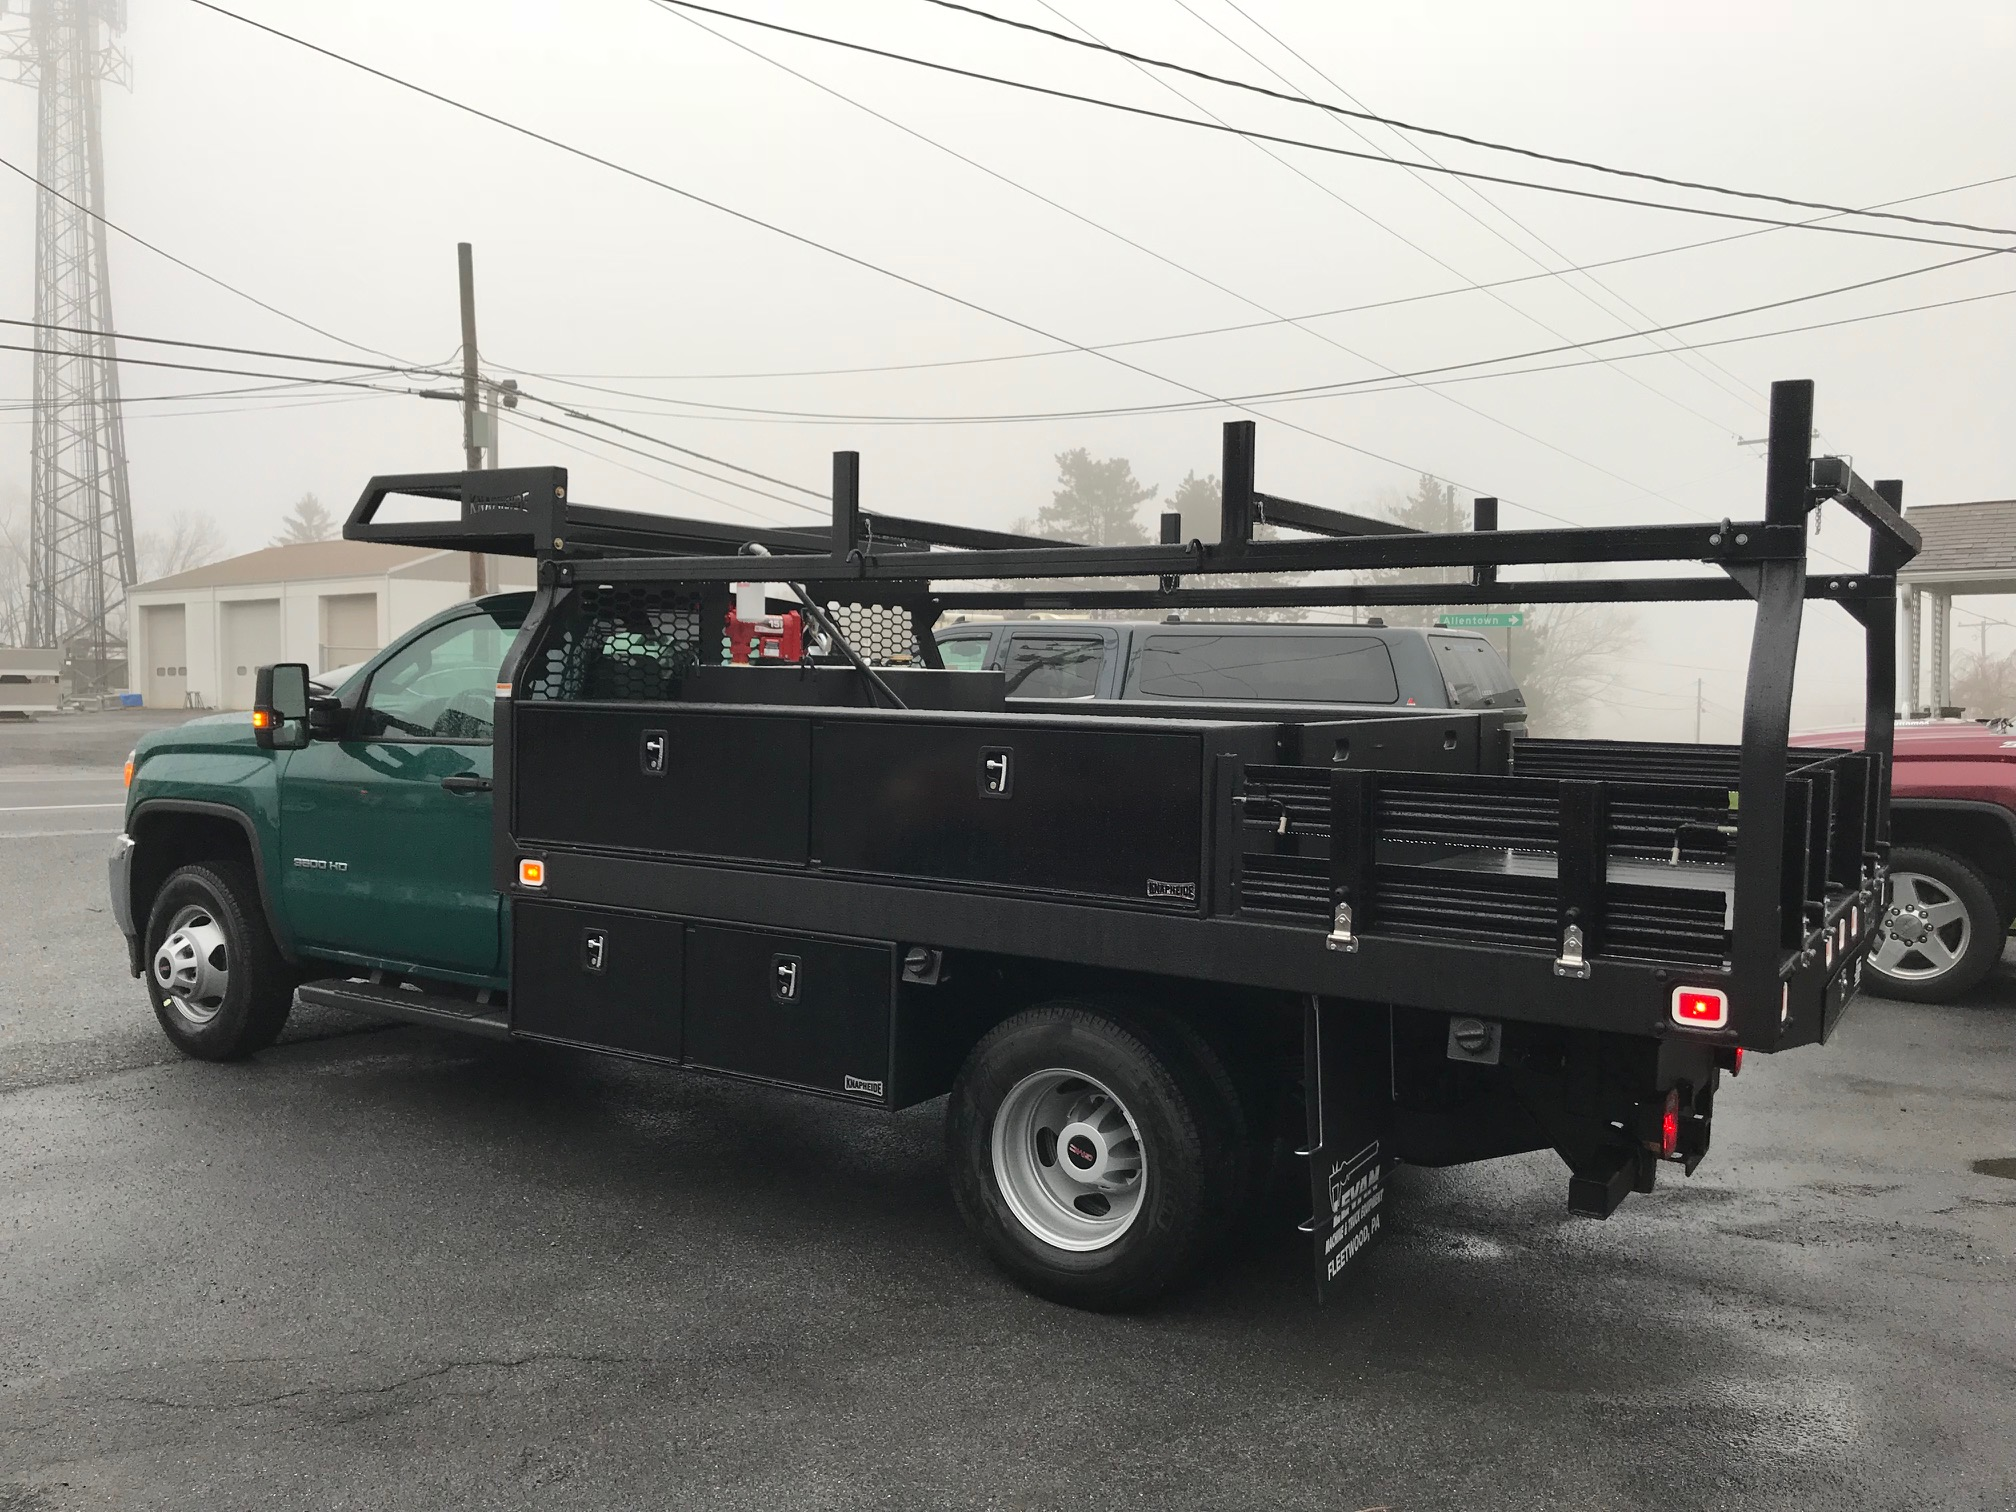 side of green and black truck